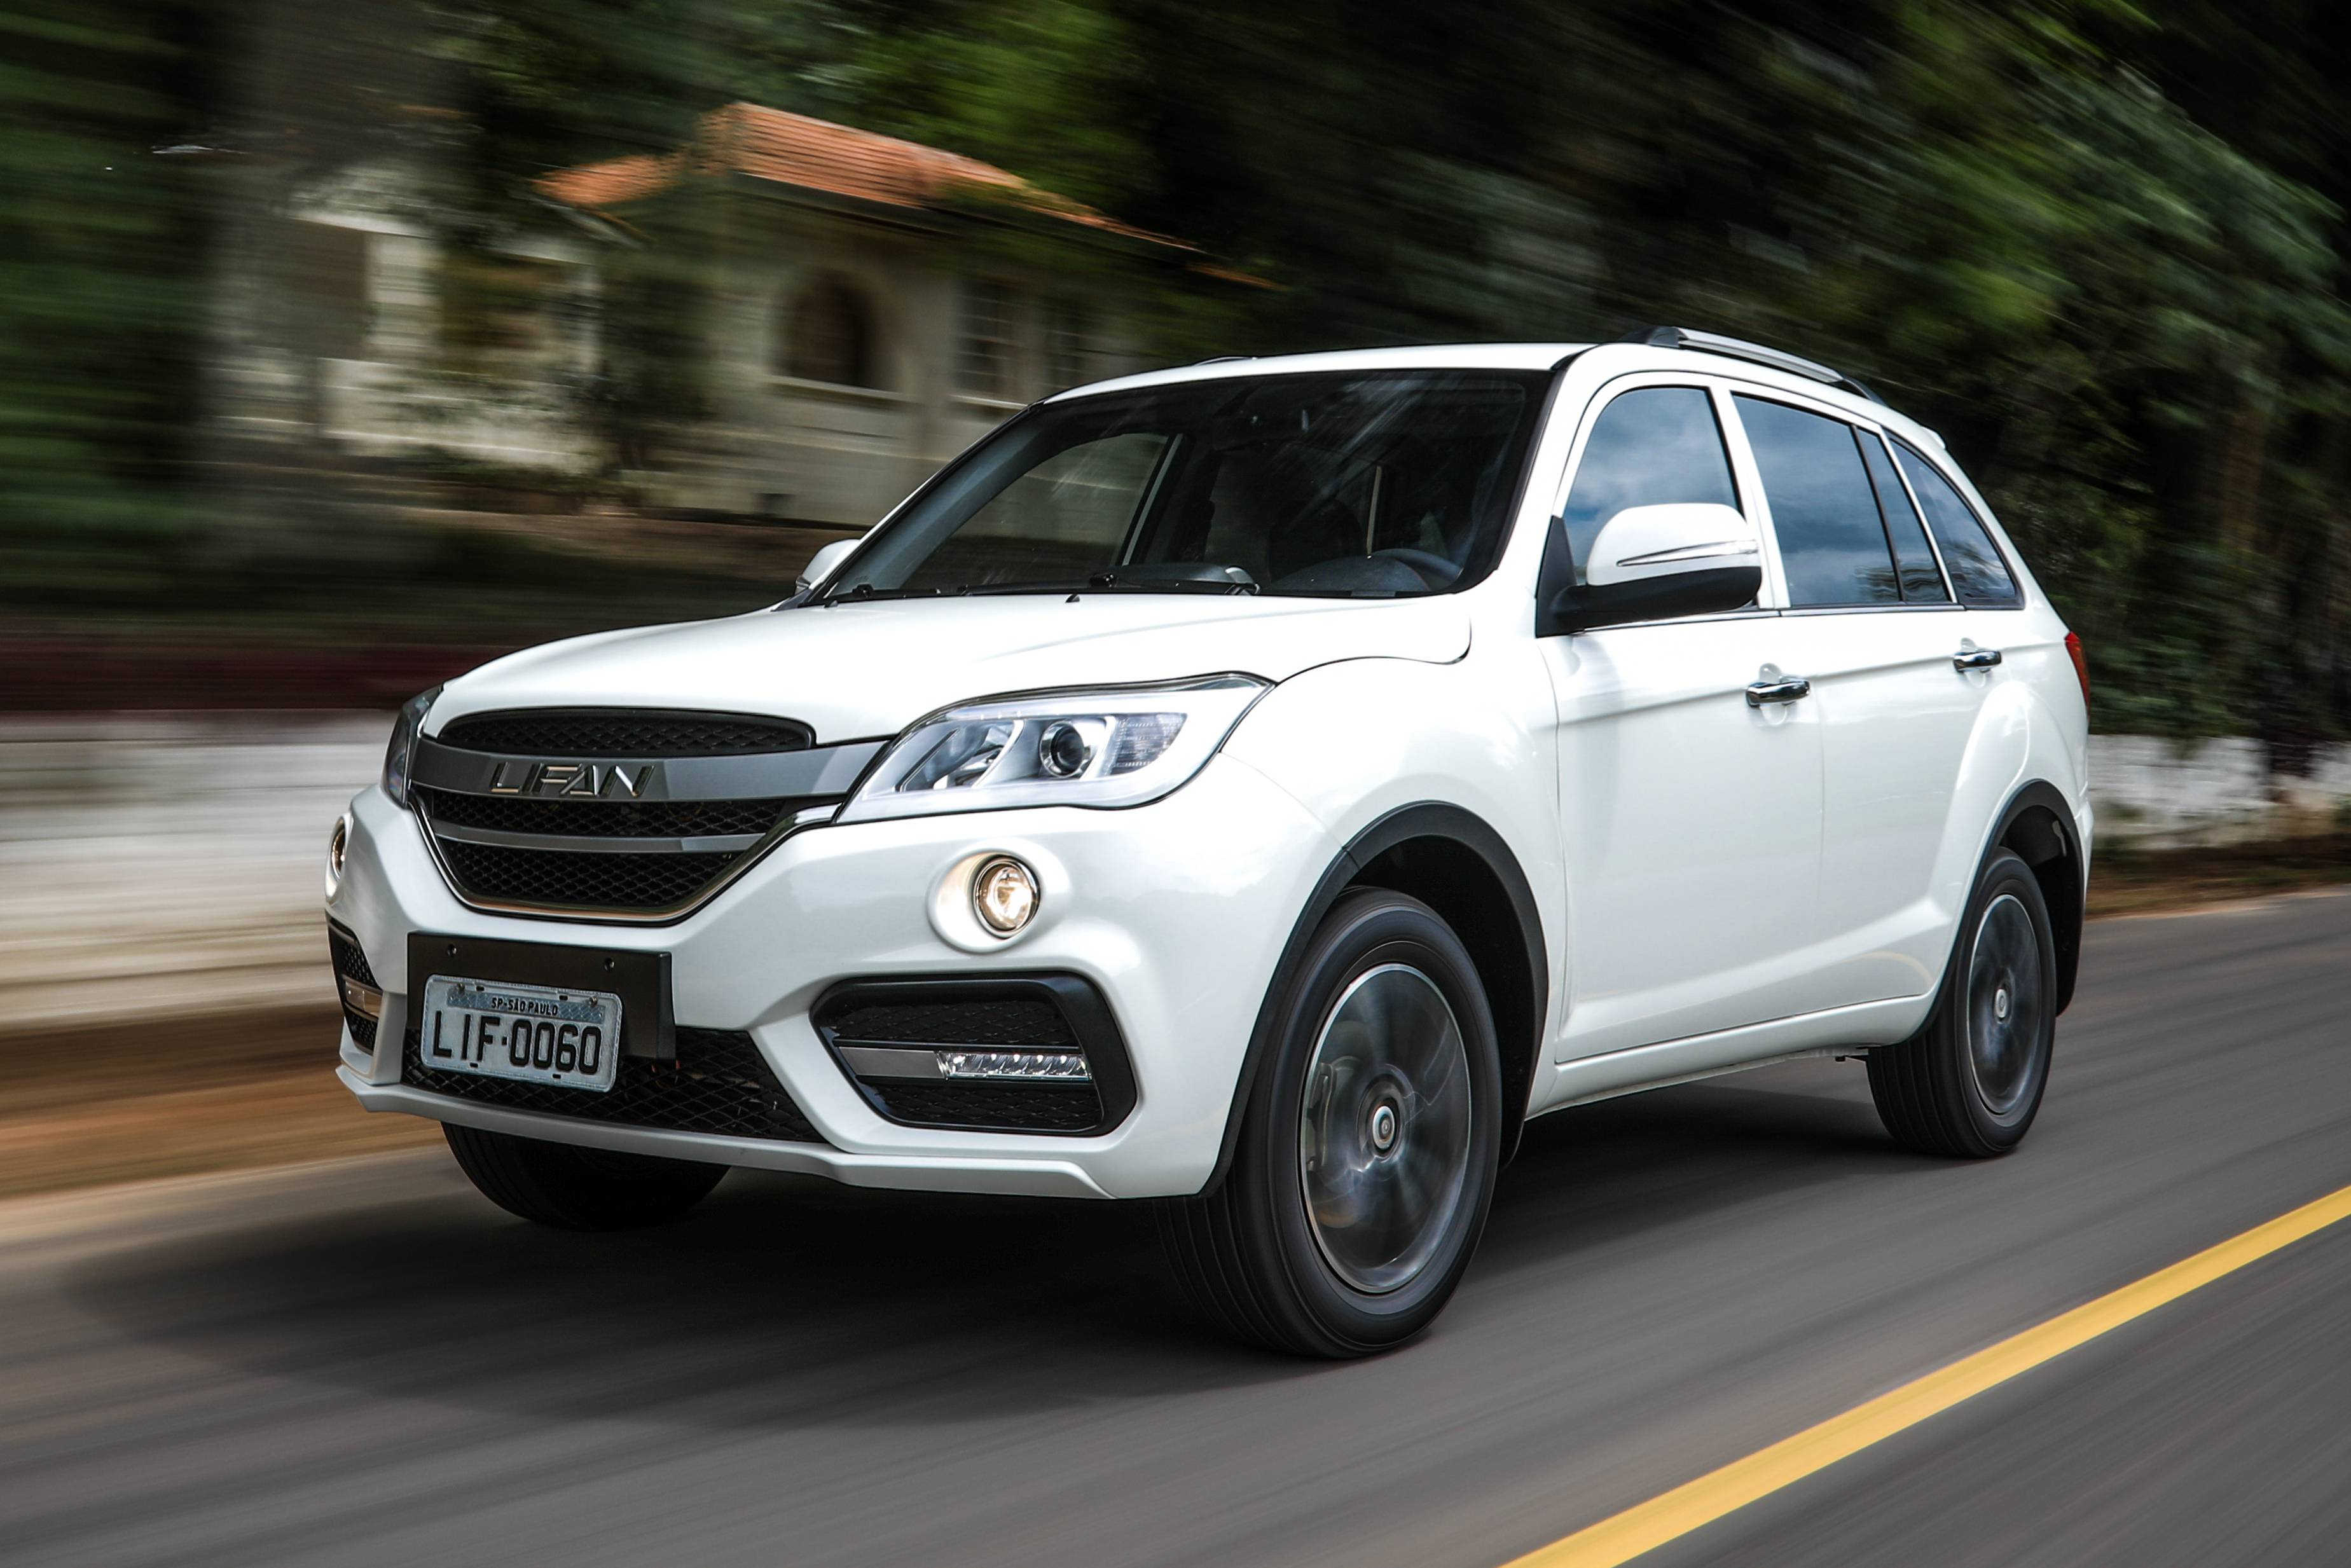 Lifan X60 I Restyling 2015 - 2016 SUV 5 door :: OUTSTANDING CARS